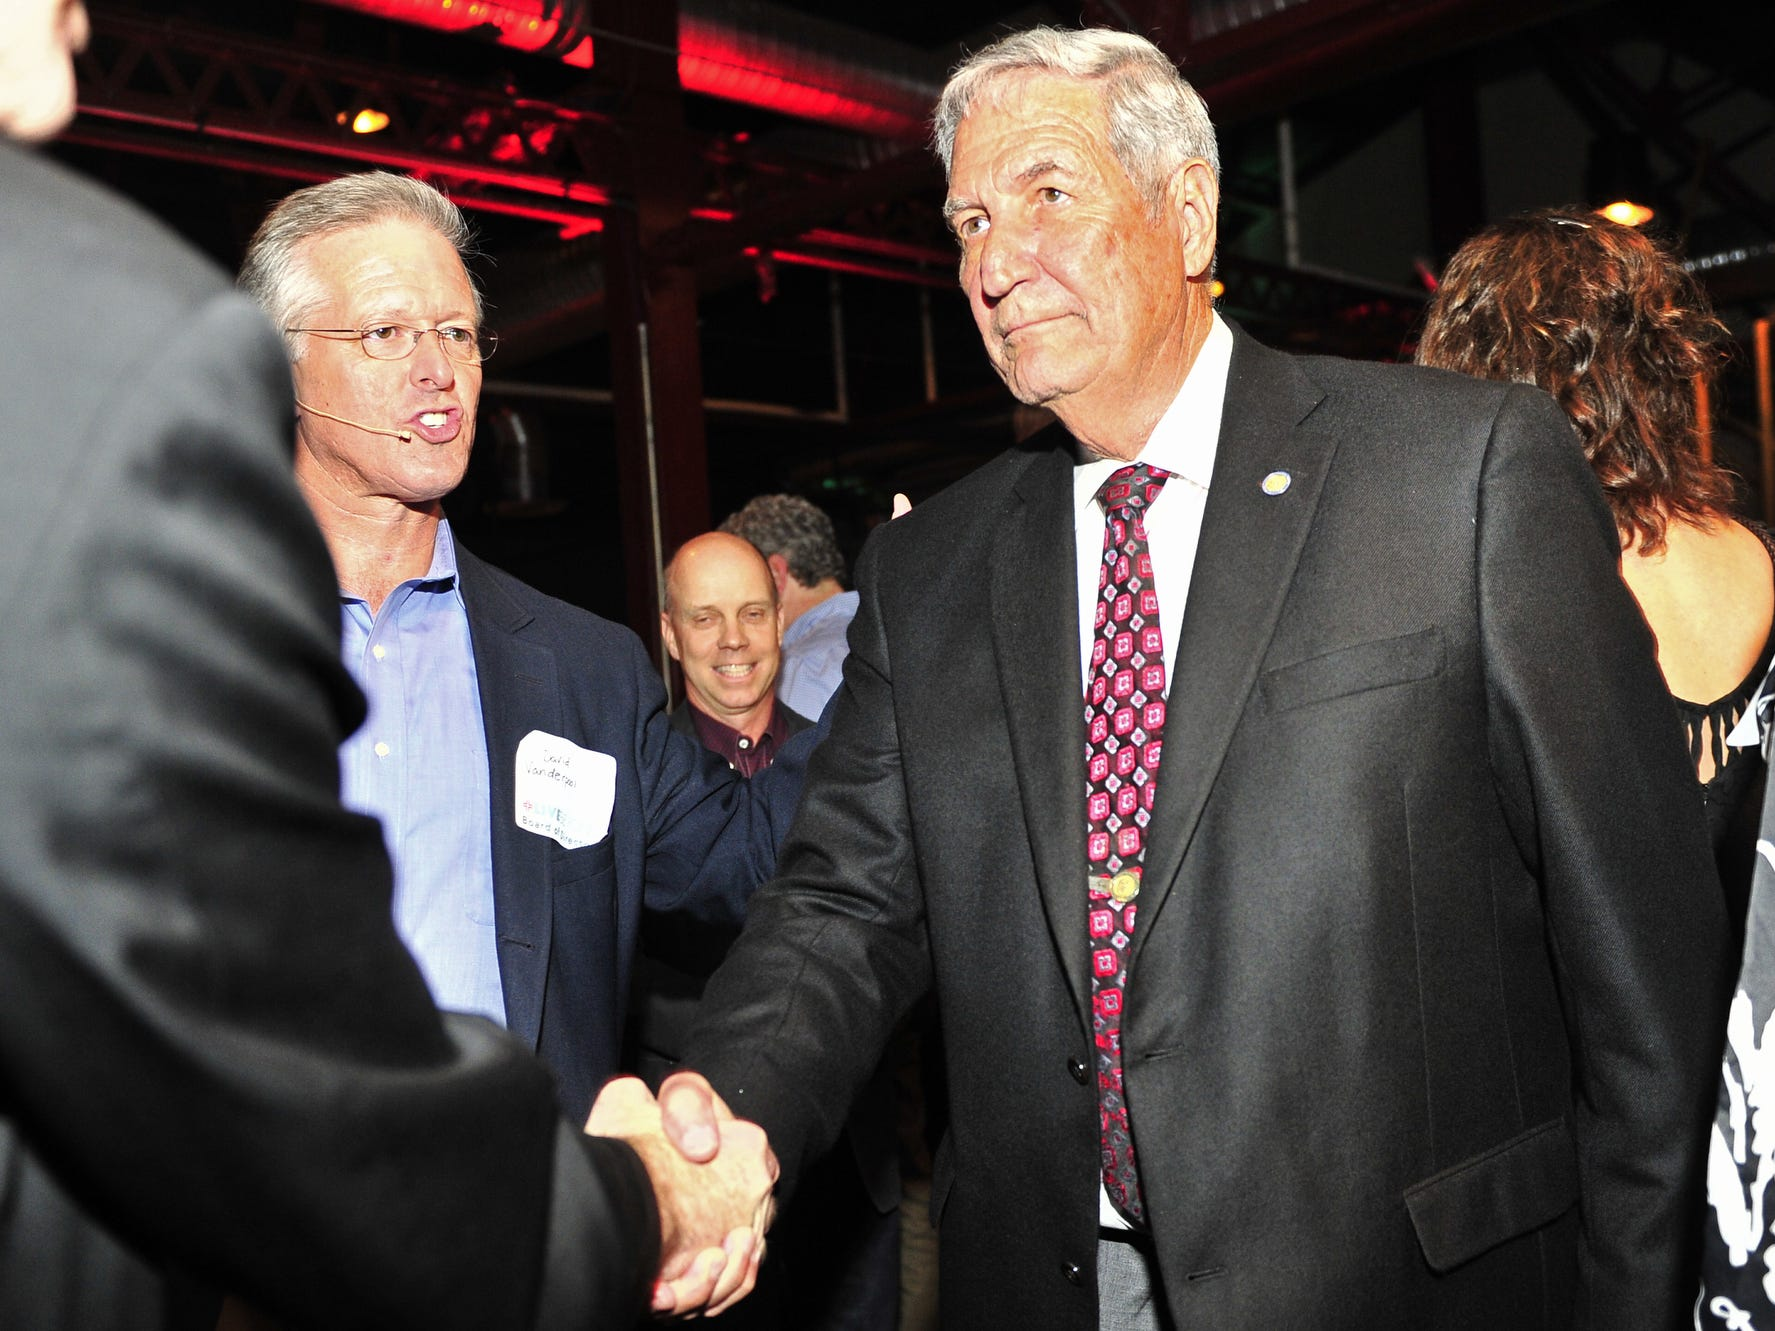 Gene Stallings, a longtime coach at Alabama and father of Laurie Vanderpool, has been to Haiti twice and raised about $450,000 for the cause.